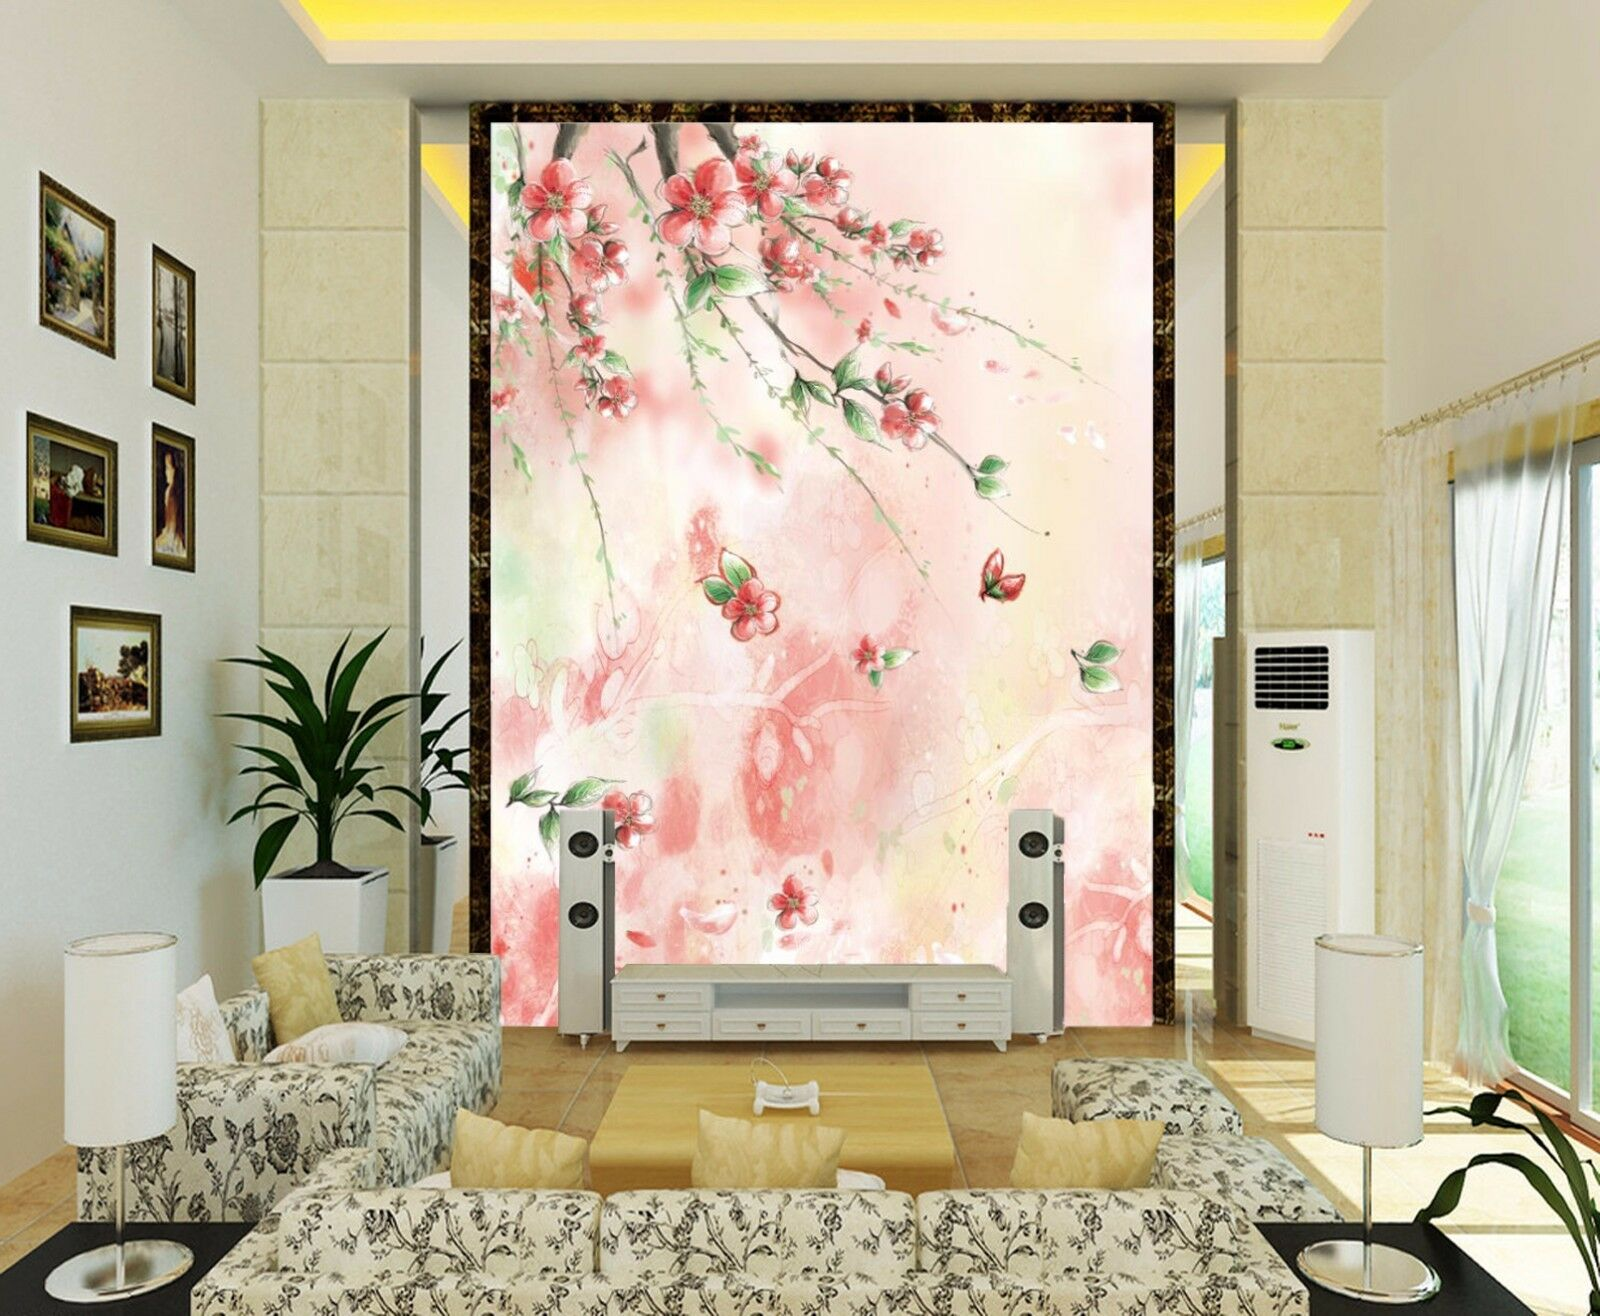 3D Flying Flowers 199 WallPaper Murals Wall Print Decal Wall Deco AJ WALLPAPER